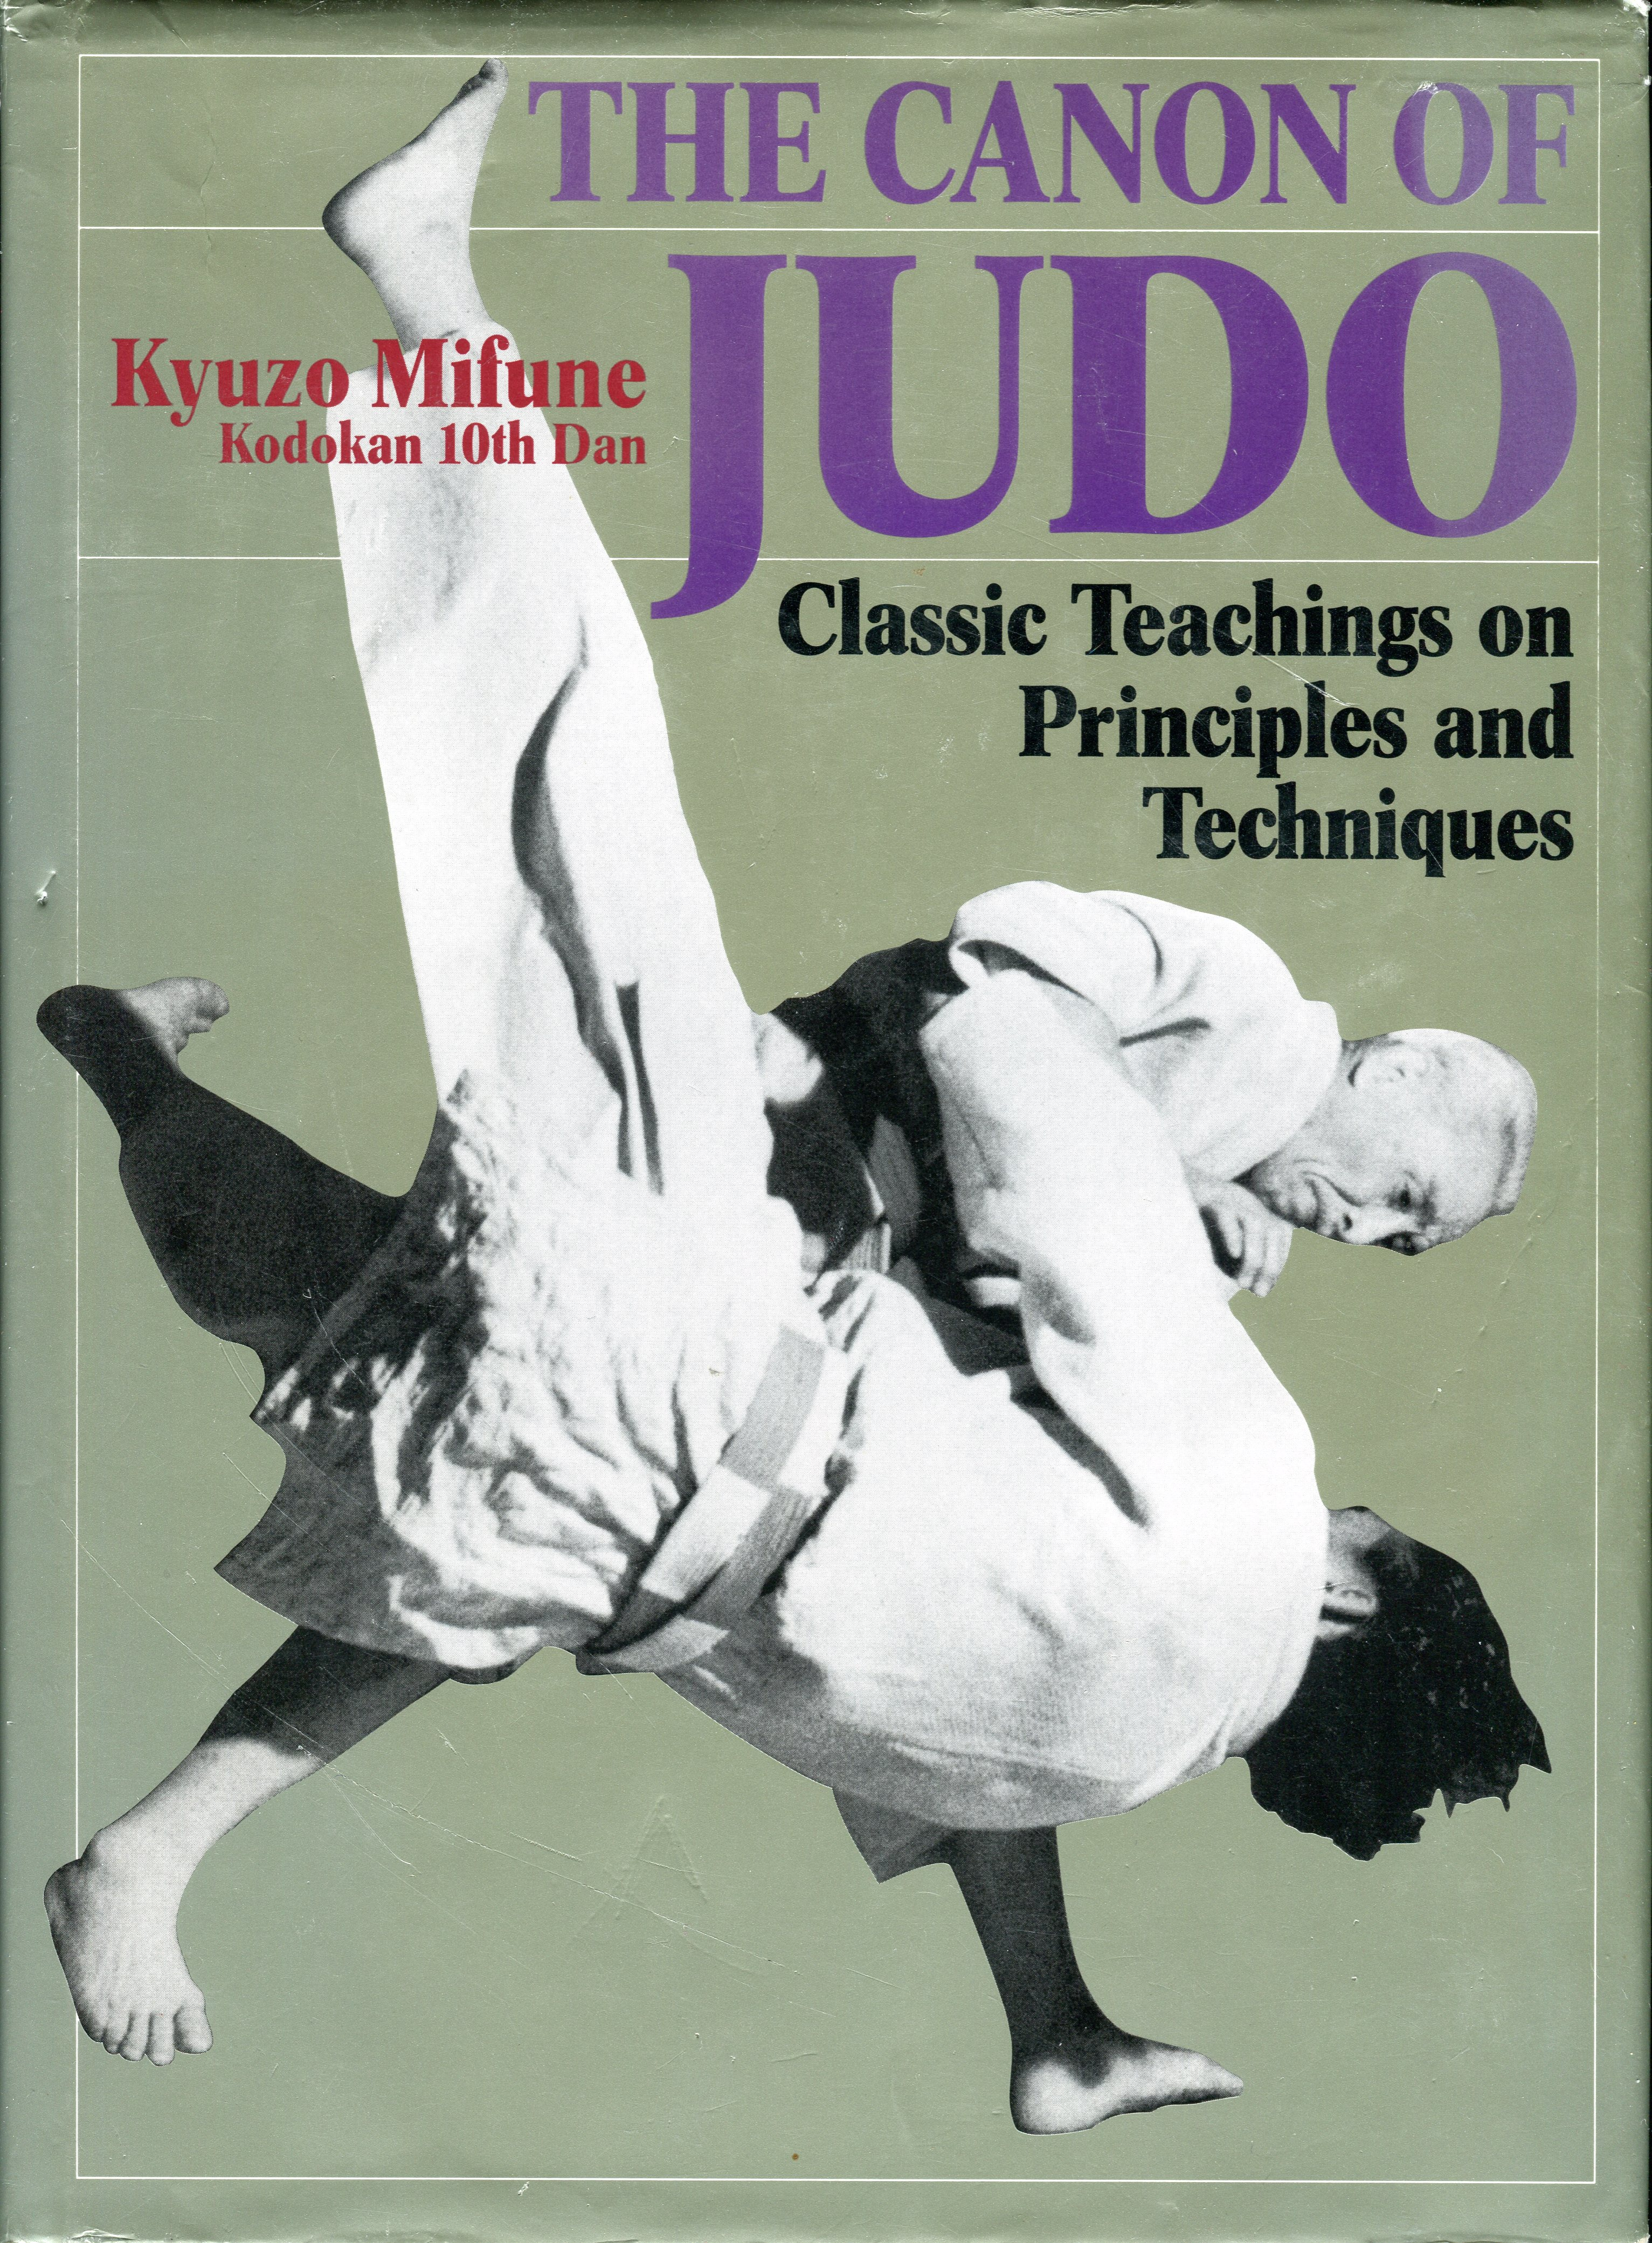 2004 The Canon of Judo Classic Teachings on Principles and Techniques 1.jpg 9bc1e3d900